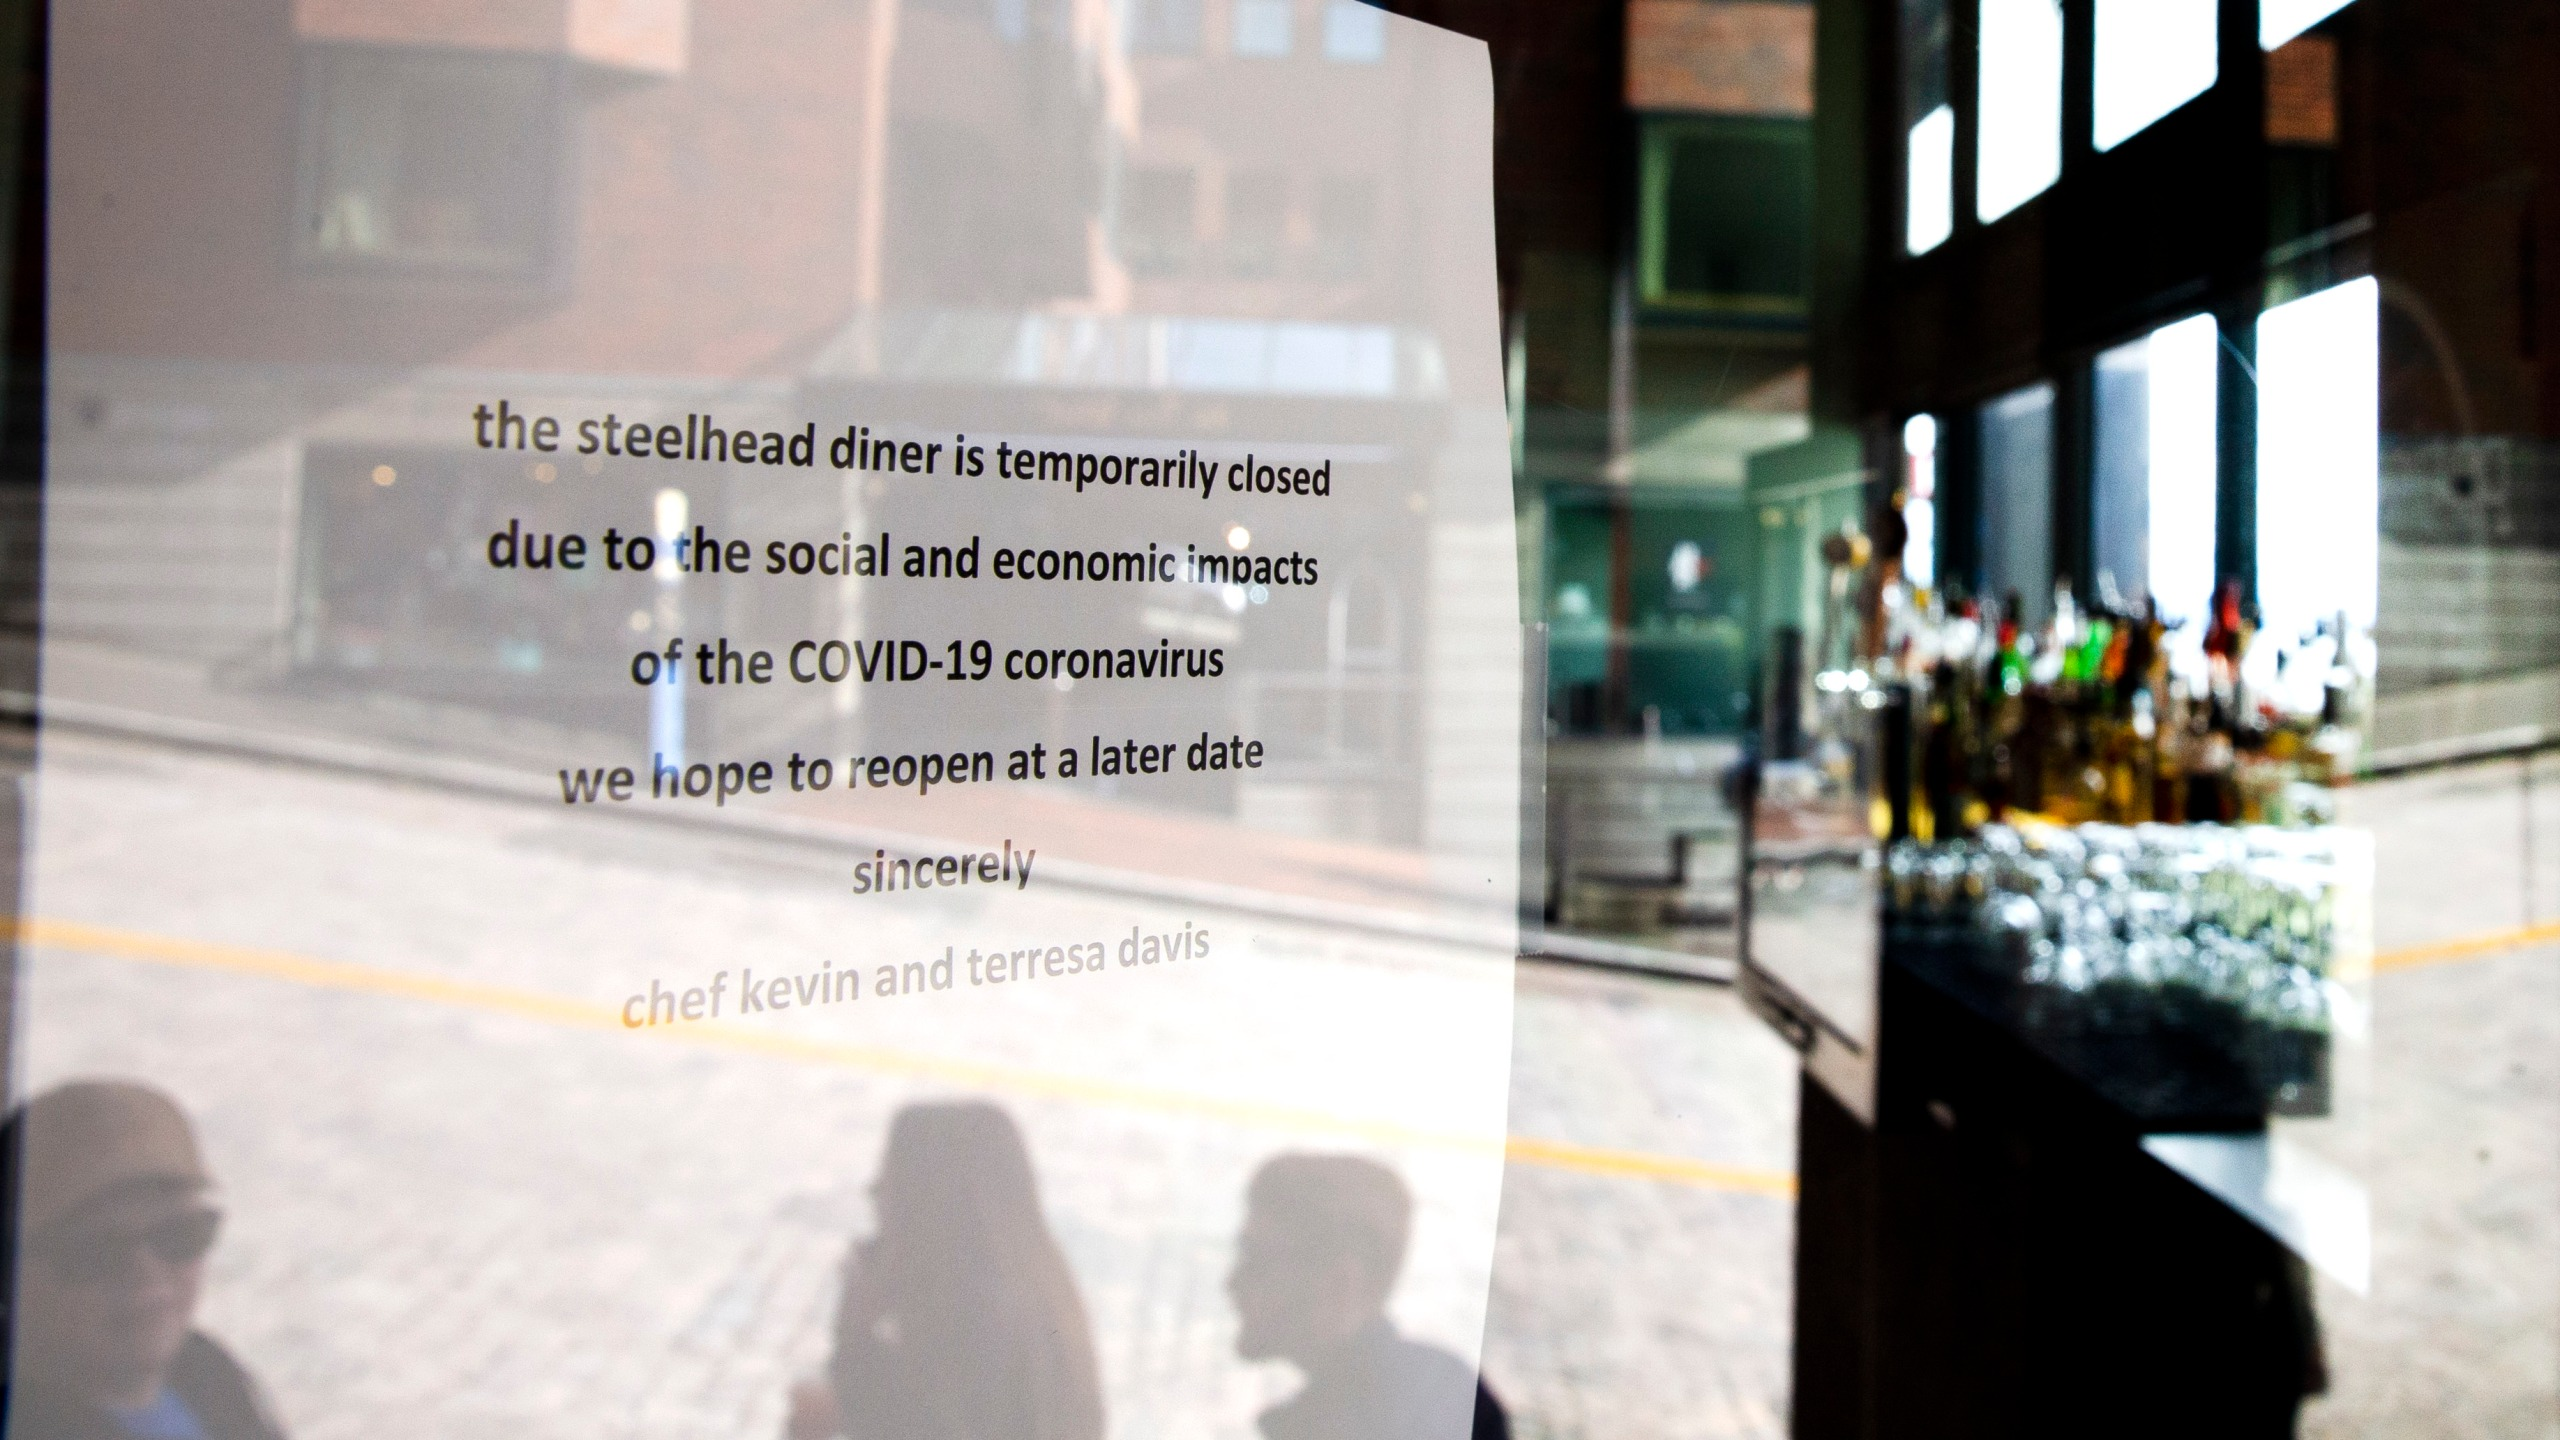 The Steelhead Diner is closed on March 8, 2020 in Seattle, Washington. (Karen Ducey/Getty Images)